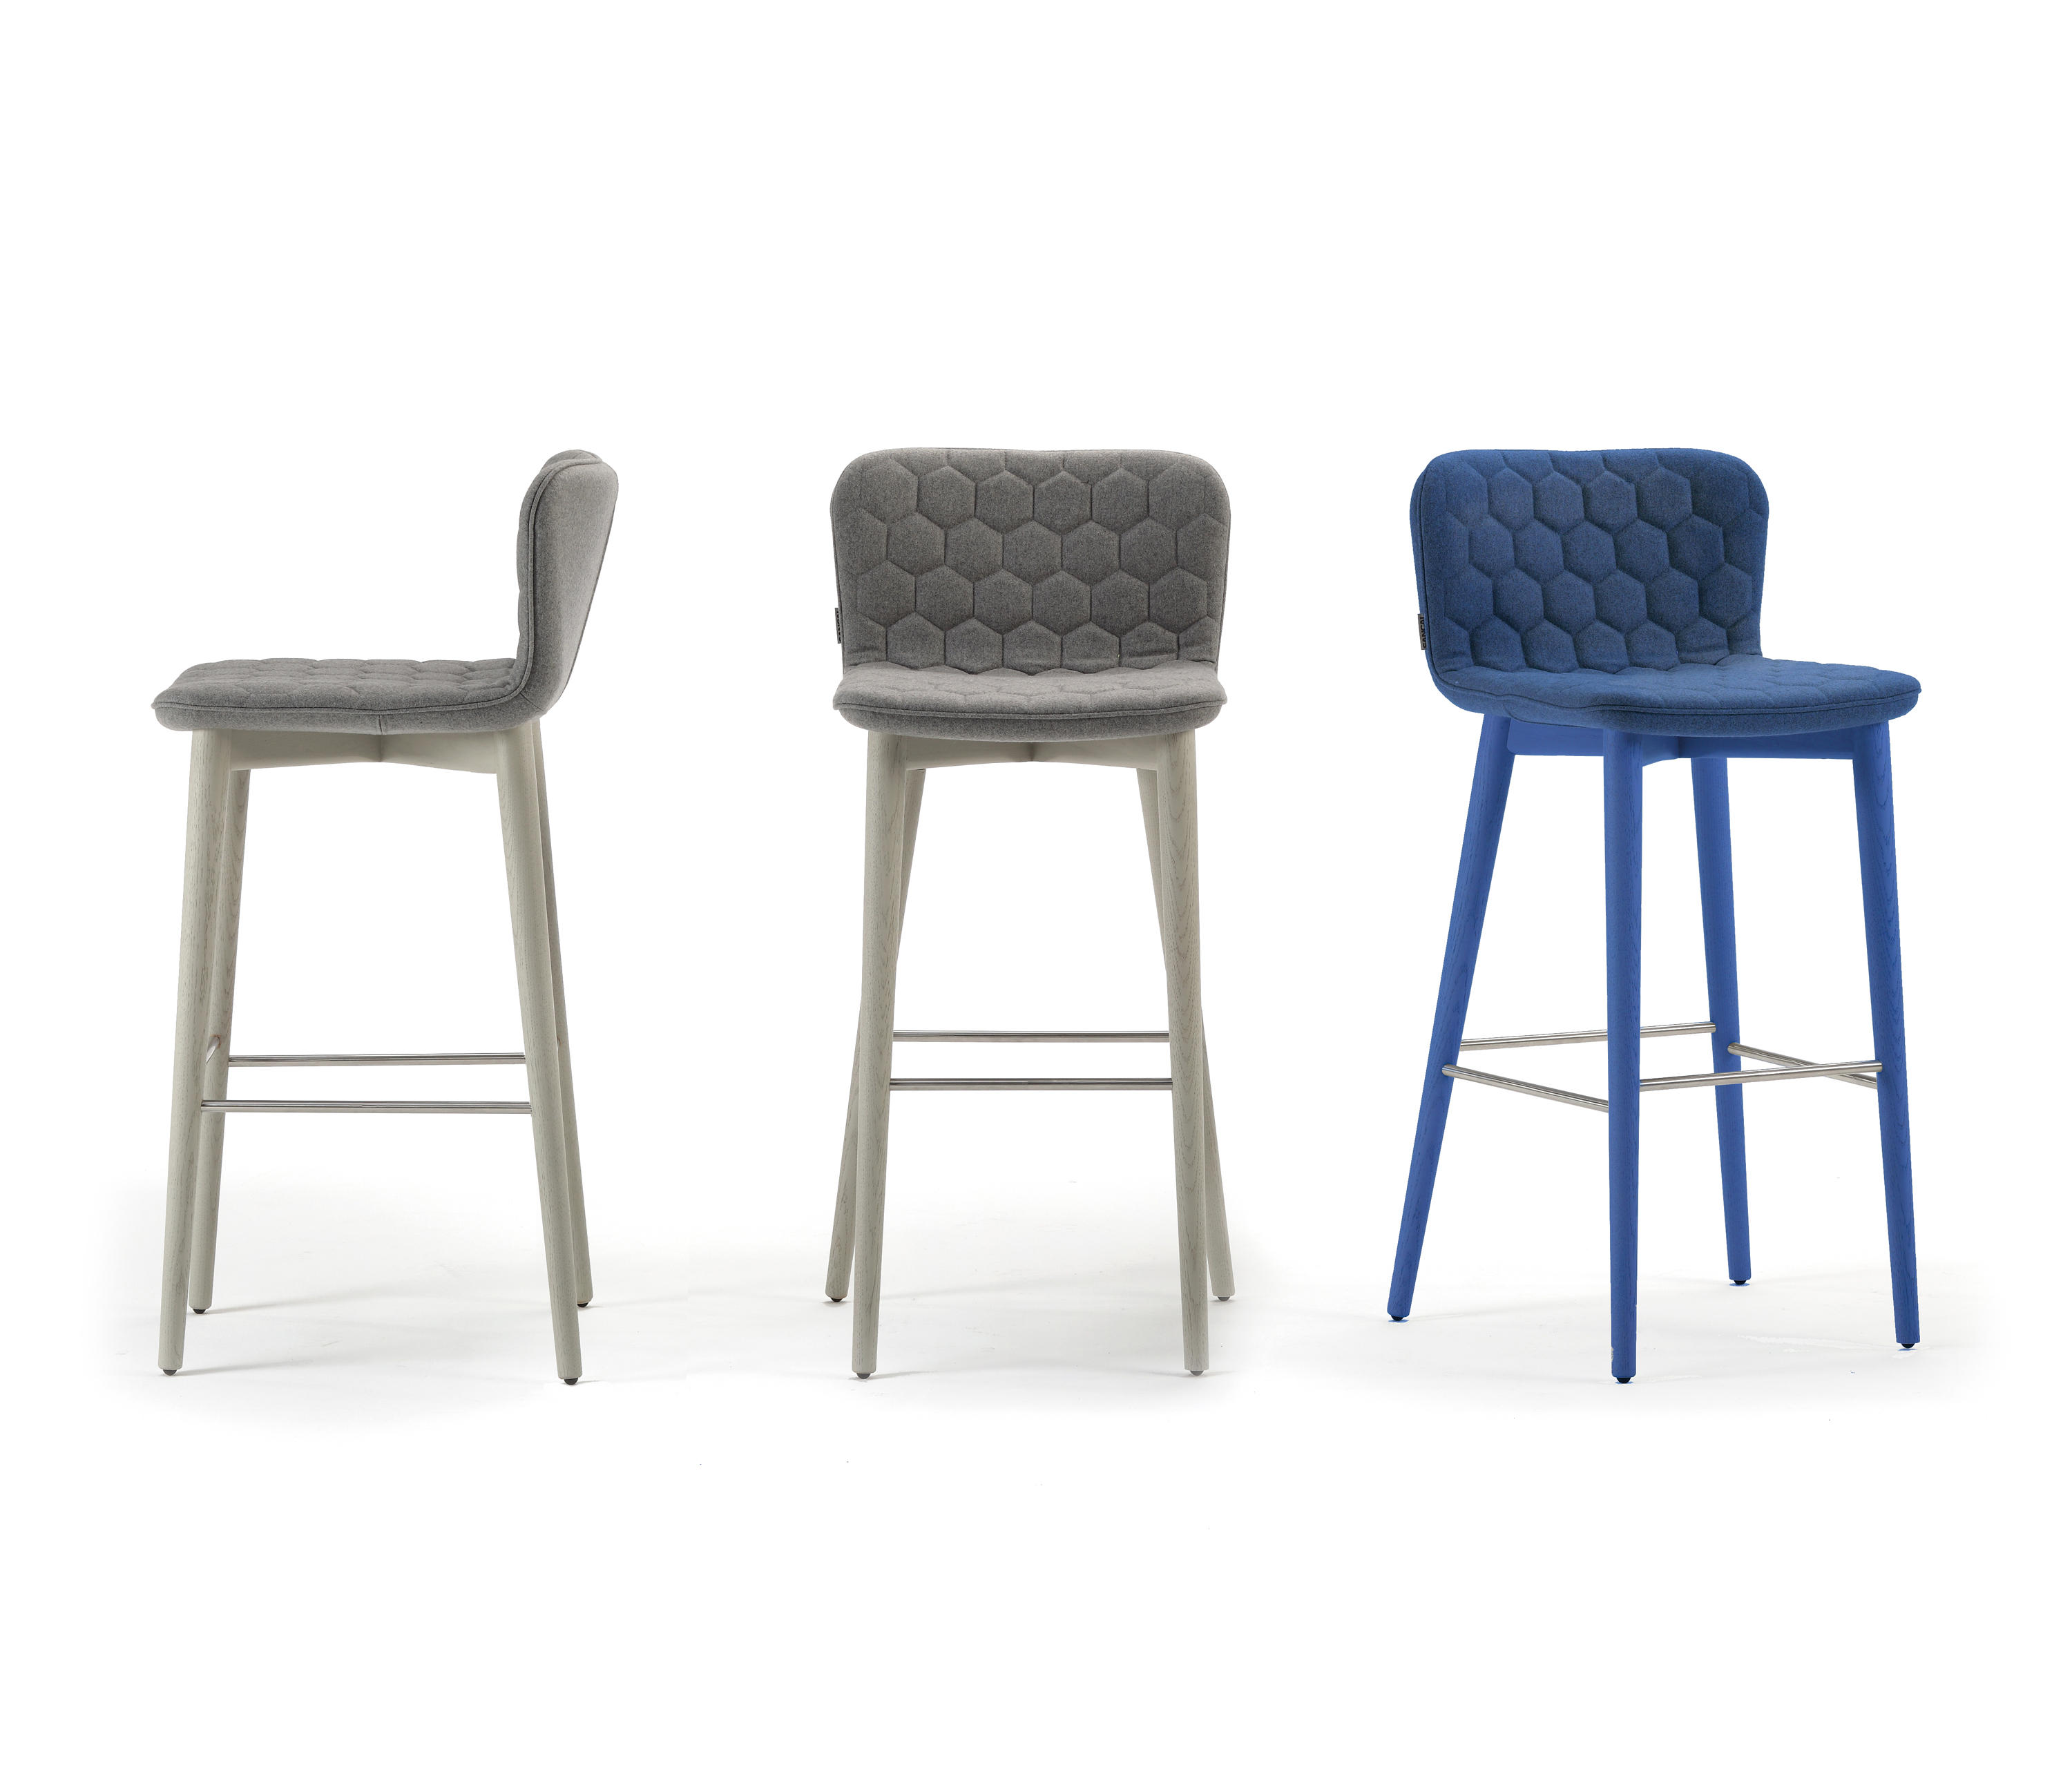 Tea Chairs From Sancal Architonic